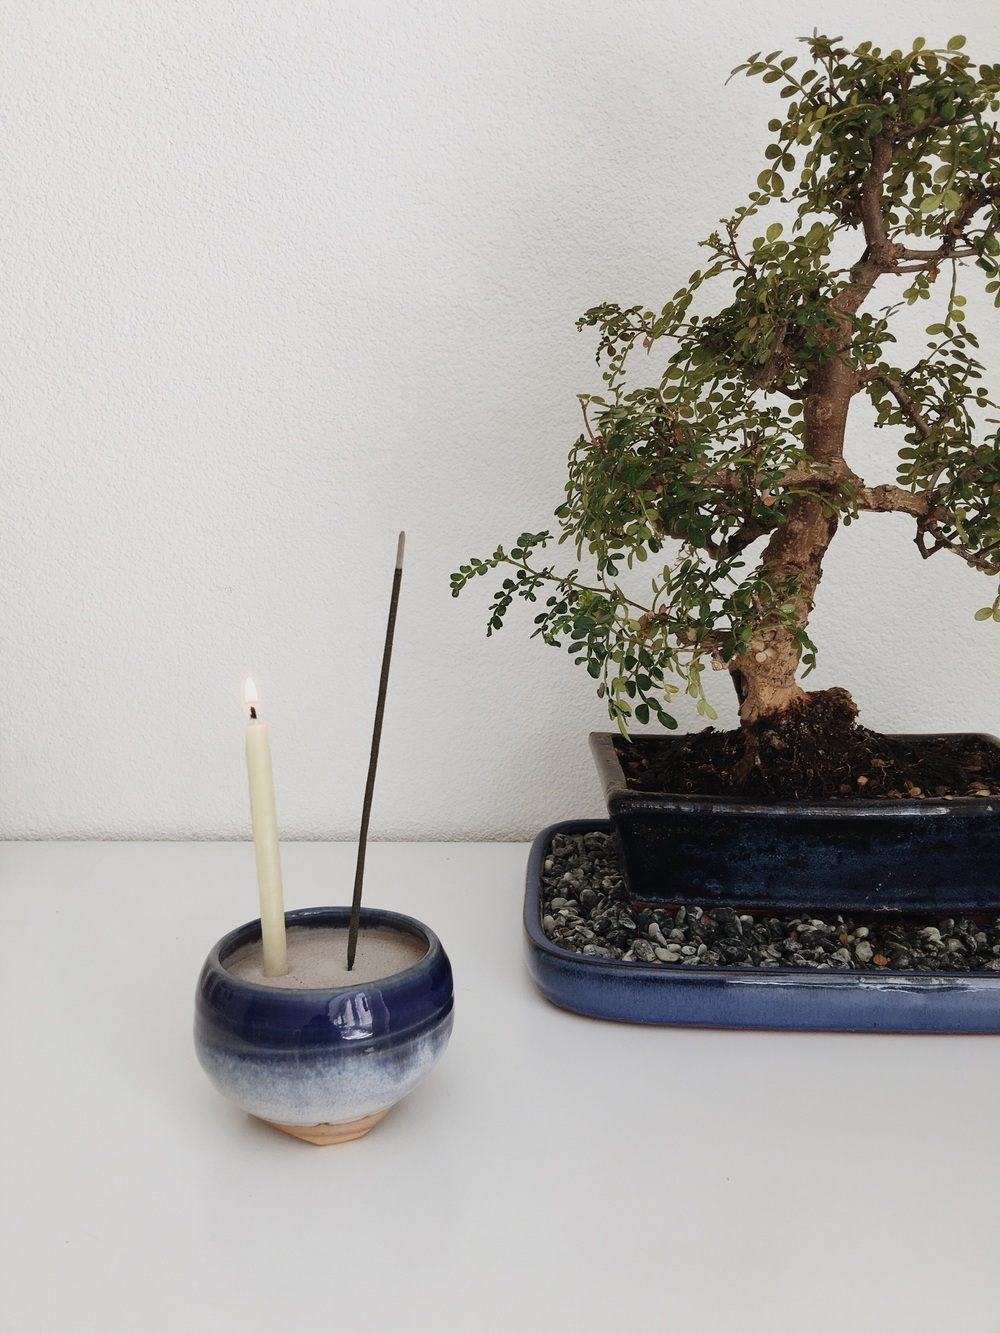 Incense bowl shoyeido, incense, handmade Prayer candle